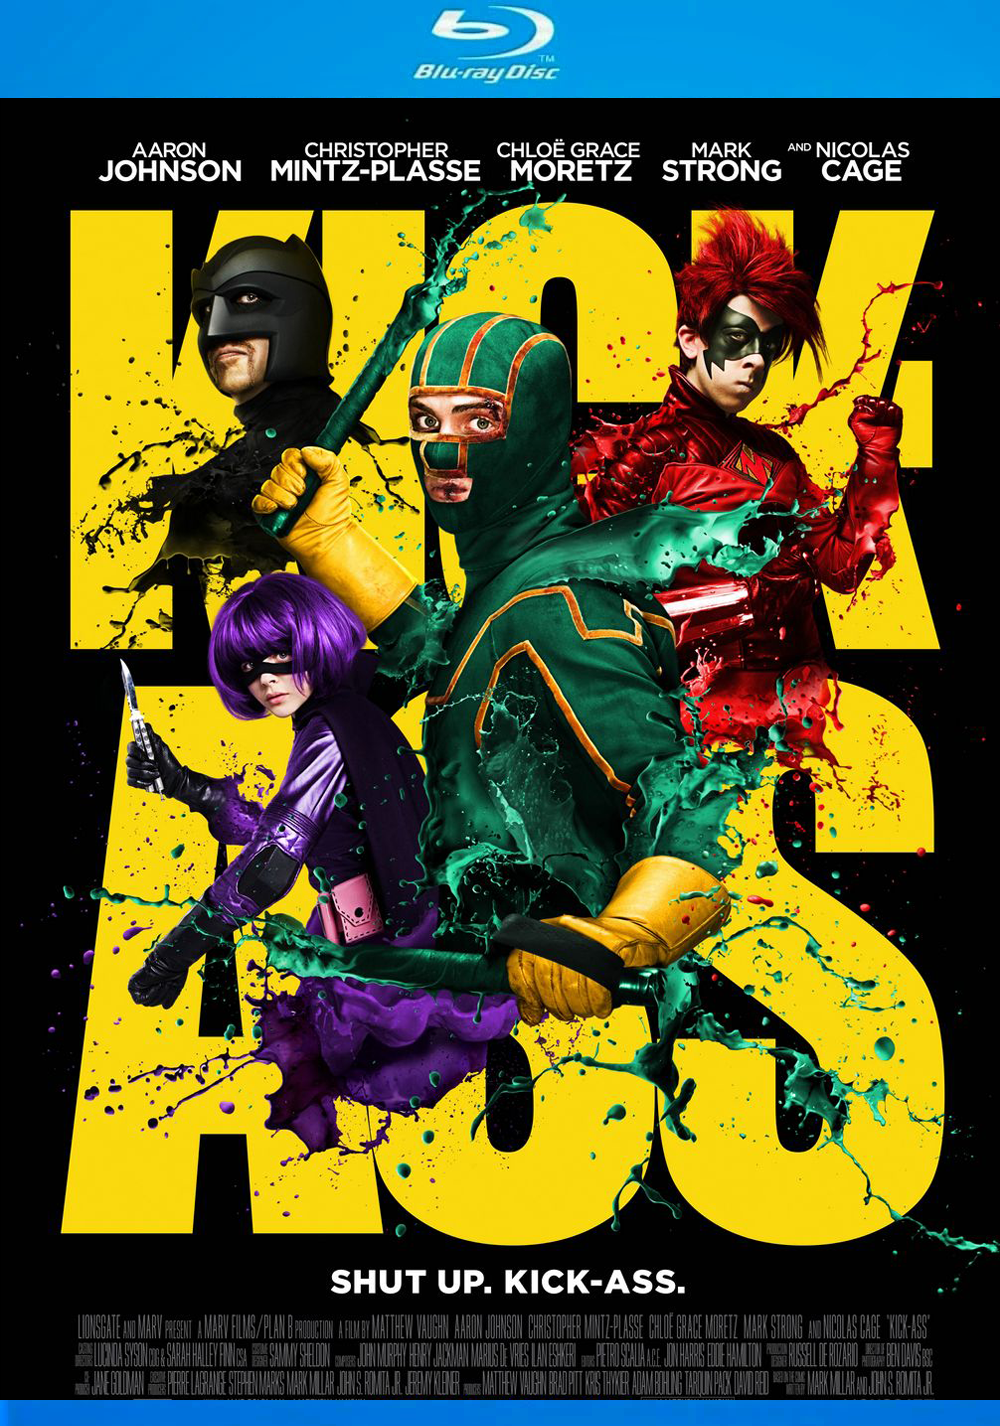 Download Kick-Ass - Quebrando Tudo (2010) - Dublado MP4 720p BDRip MEGA